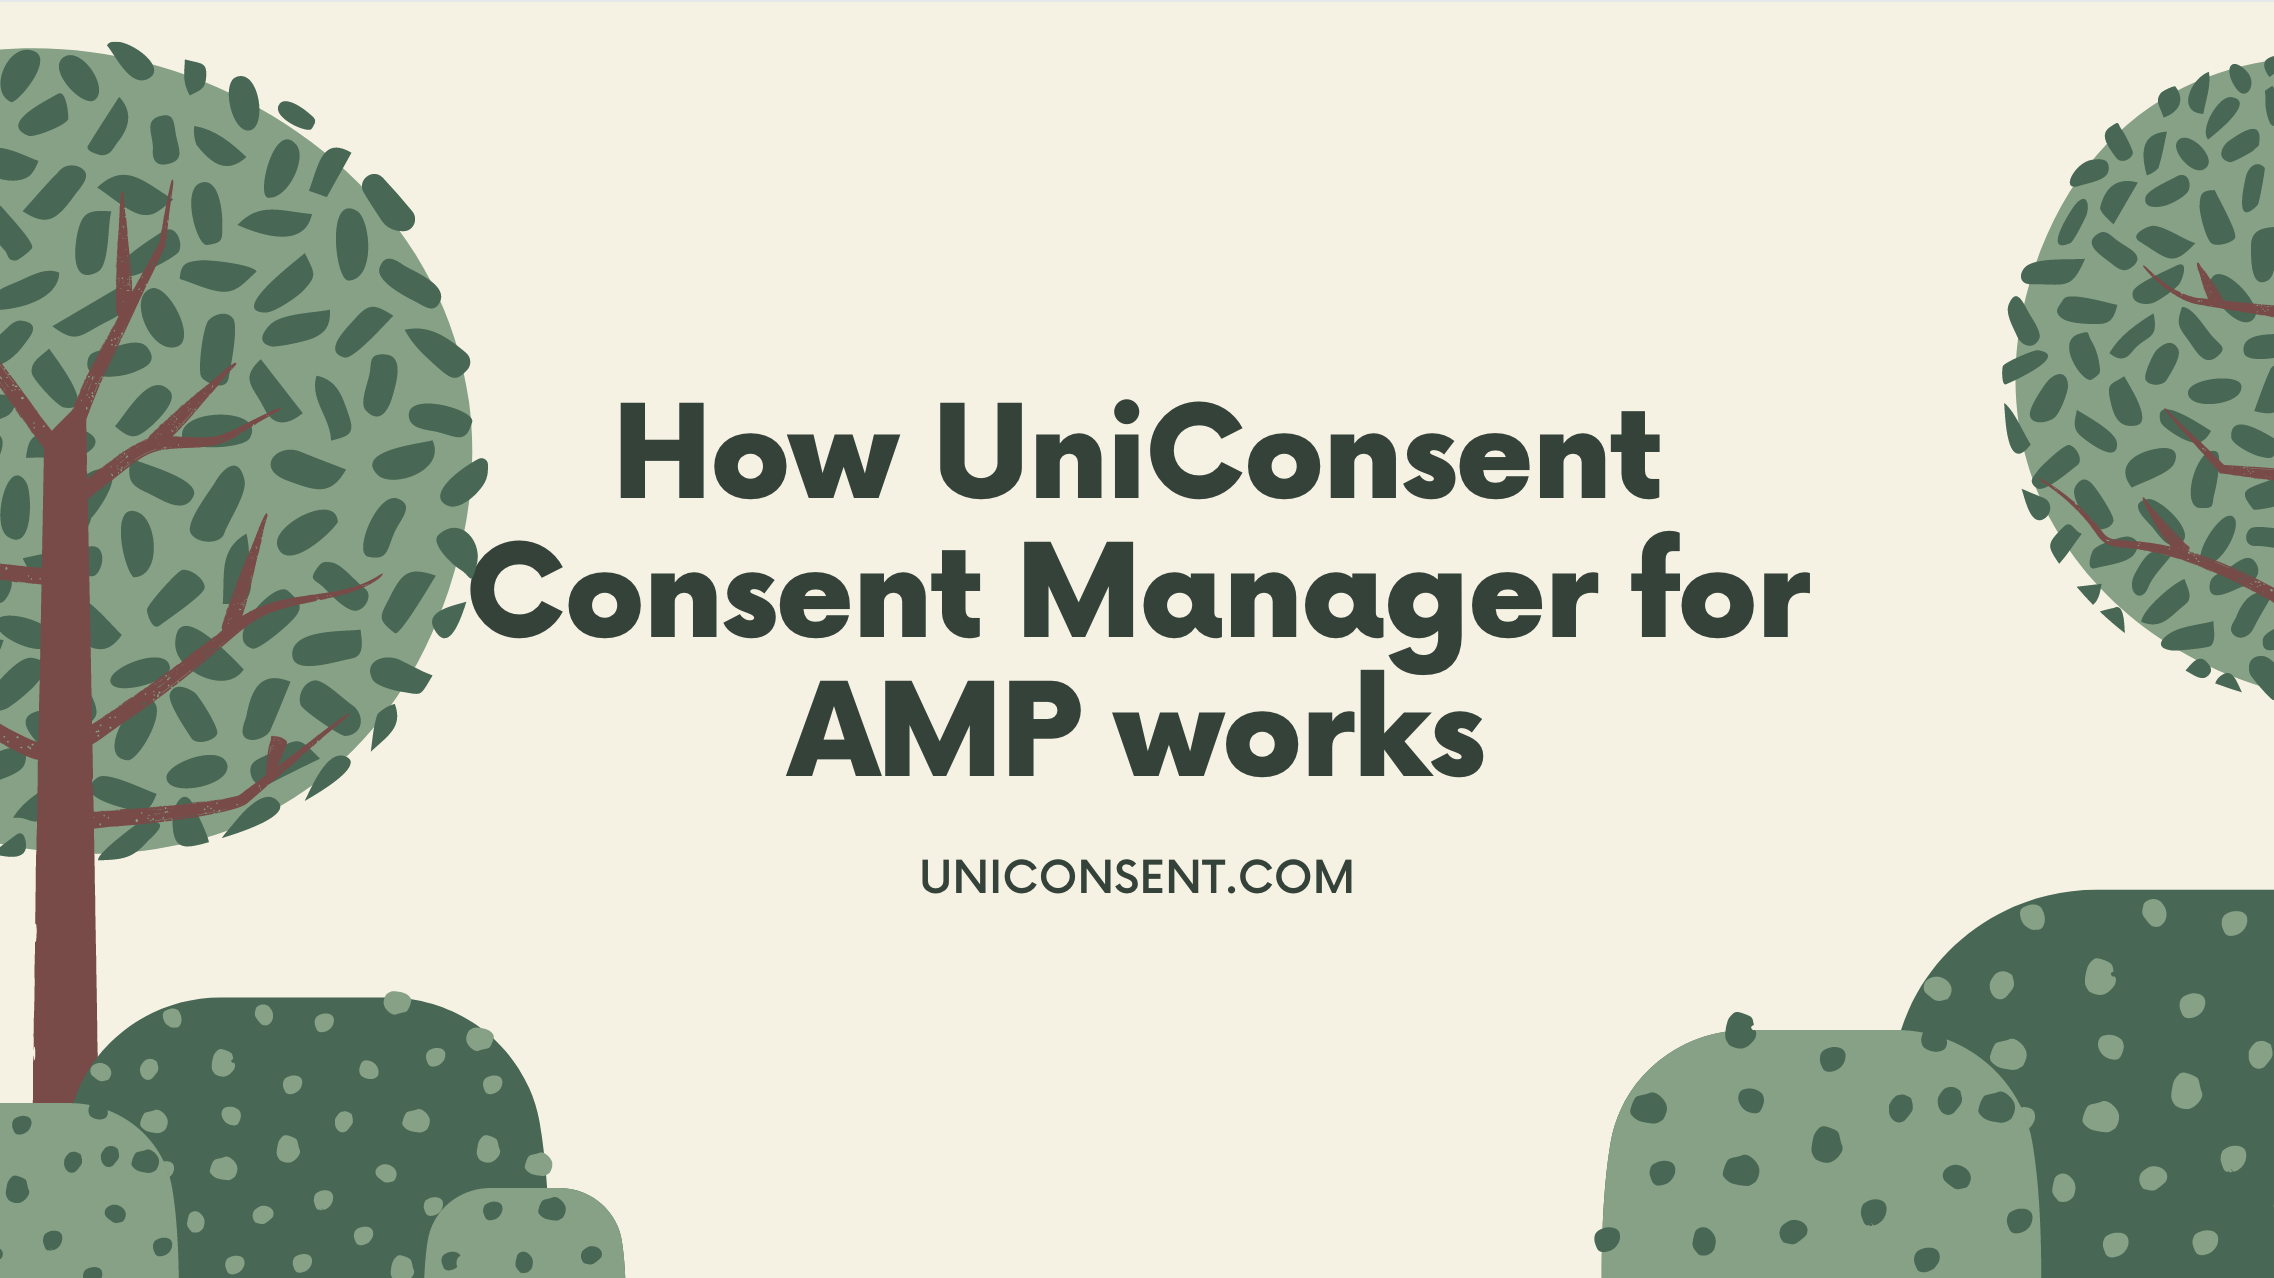 CMP for AMP: How UniConsent Consent Manager for AMP works